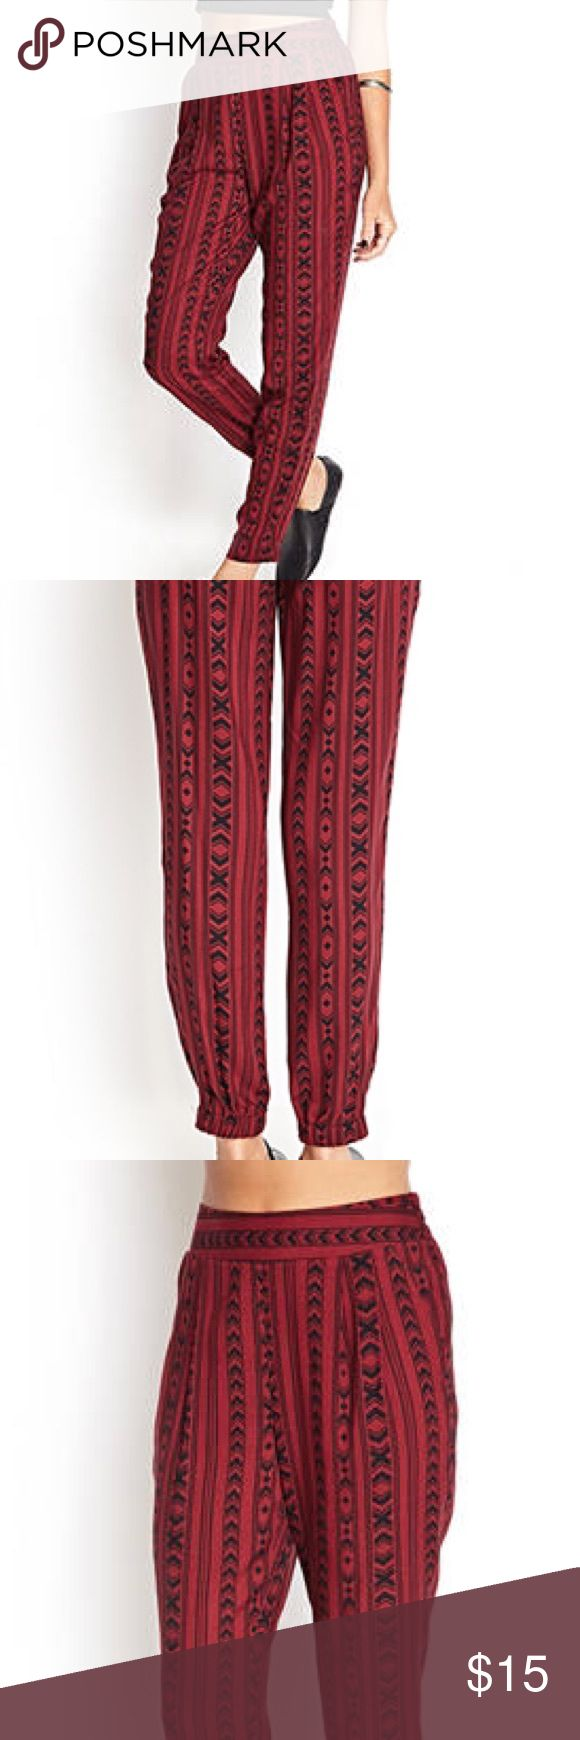 """ARROWHEAD HAREM PANTS MEDIUM,BURGUNDY/BLACK - GUC  These soft woven harem pants feature a Southwestern-inspired arrowhead print and elasticized waist. Complete with slanted front pockets, a welt back  pocket, and elasticized leg openings.  Unlined   Lightweight   100% rayon   28"""" inseam, 28"""" waist, 11"""" rise   Measured from Small   Machine wash cold   Imported   Model Info: Height: 5'7"""" 